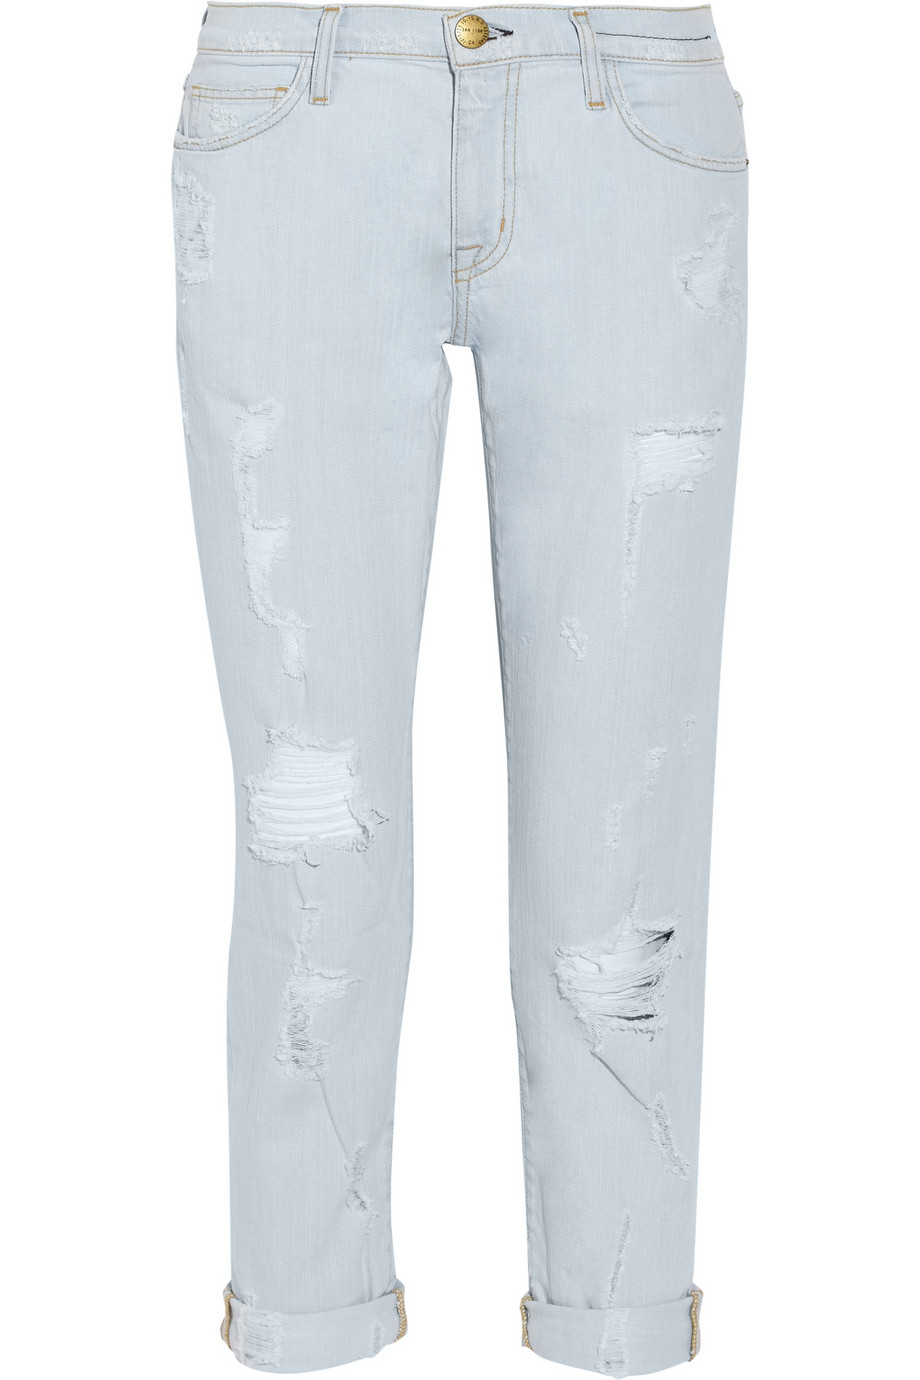 Current/Elliott The Fling distressed mid-rise straight leg jeans – 50% at THE OUTNET.COM